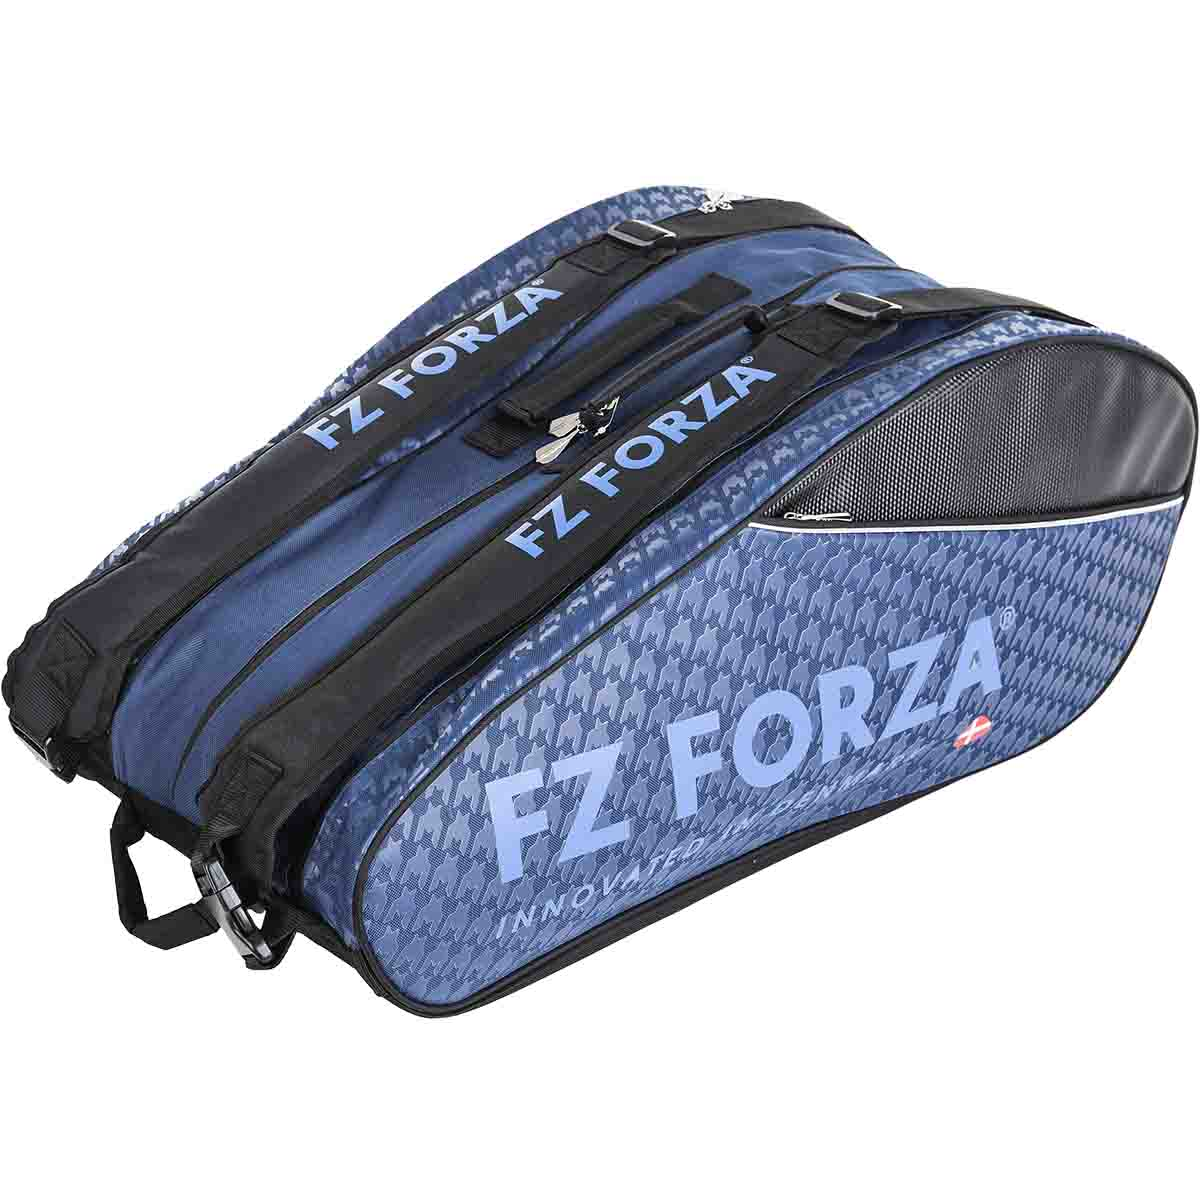 ARKANSAS RACKET BAG  - 15 PCS